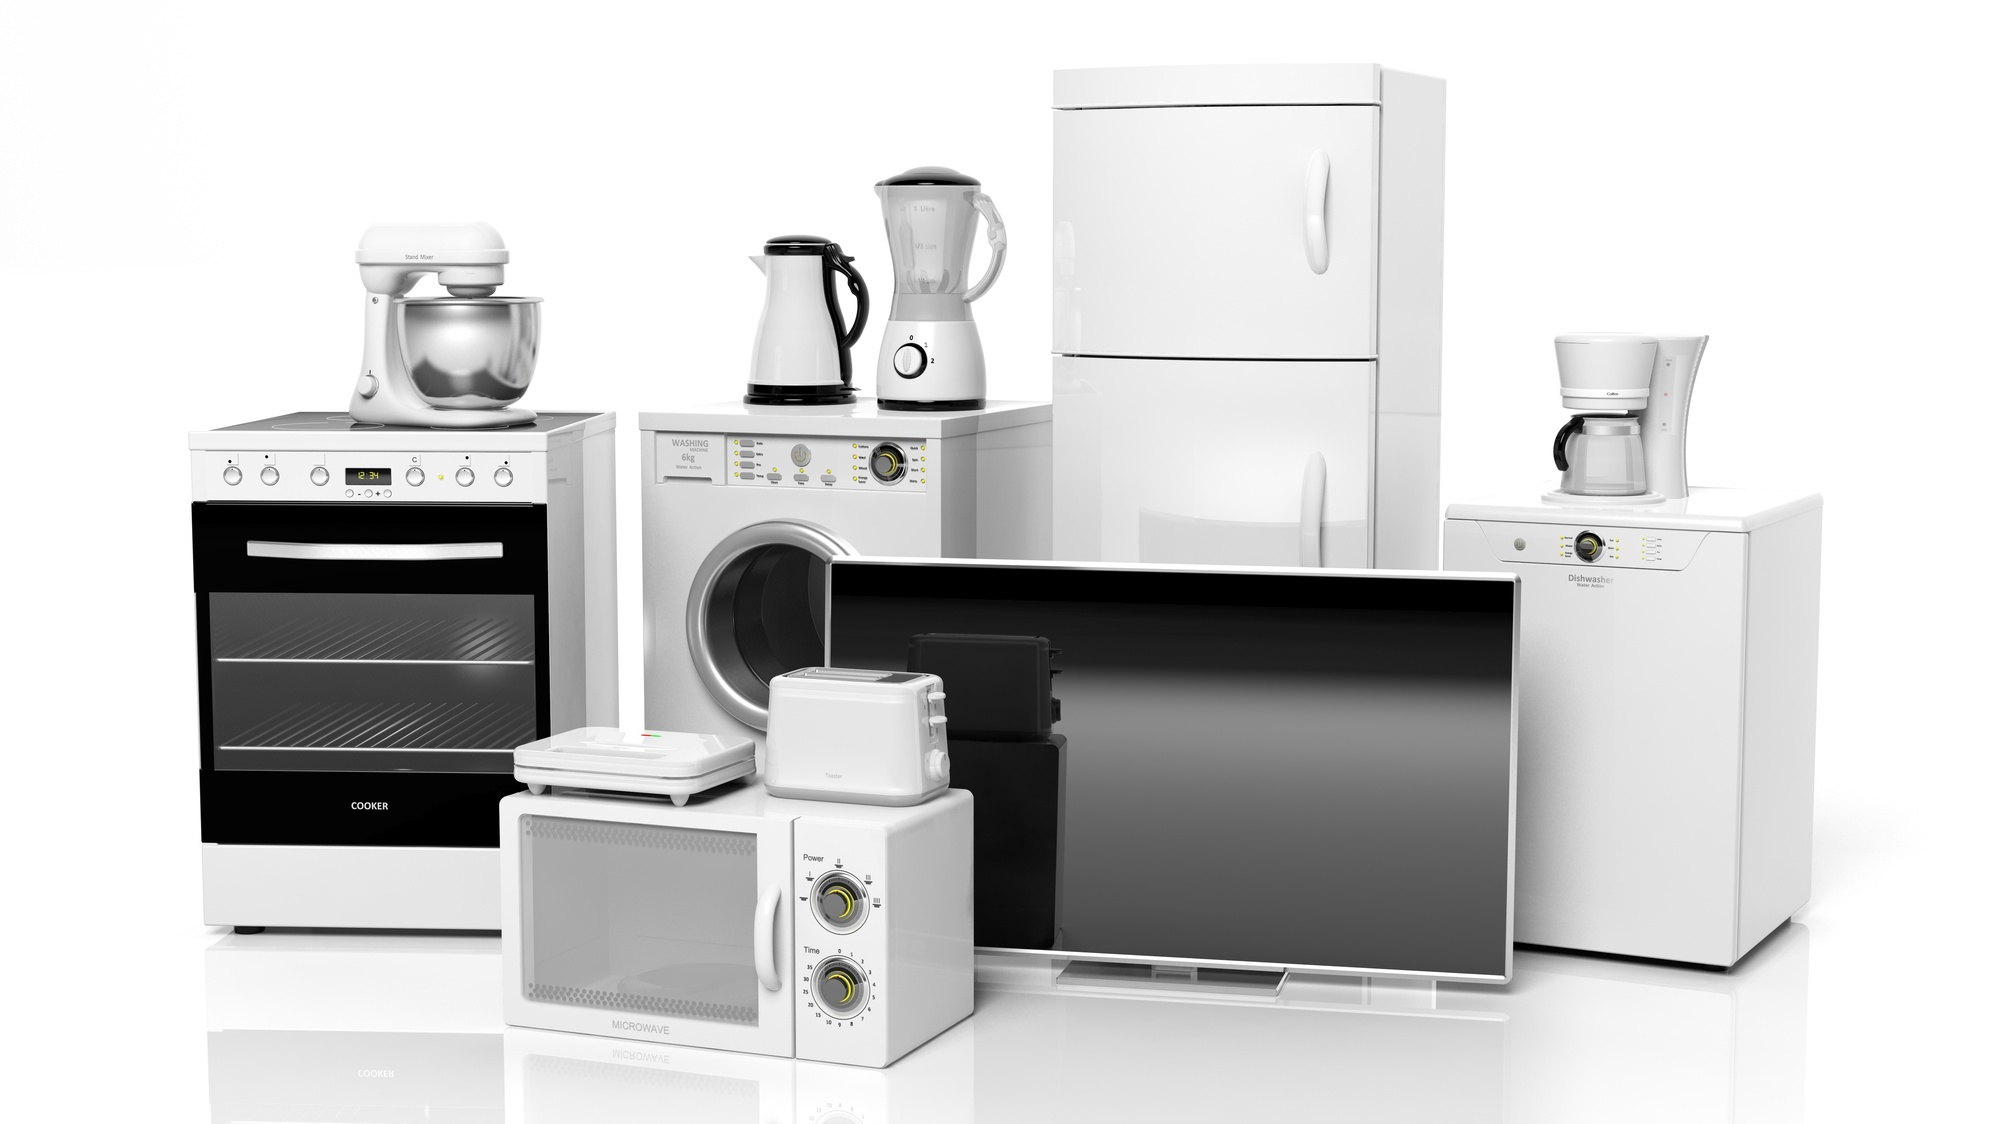 Affordable Kitchen Appliances Thrifty Momma Ramblings Saving Money Coupons Deals